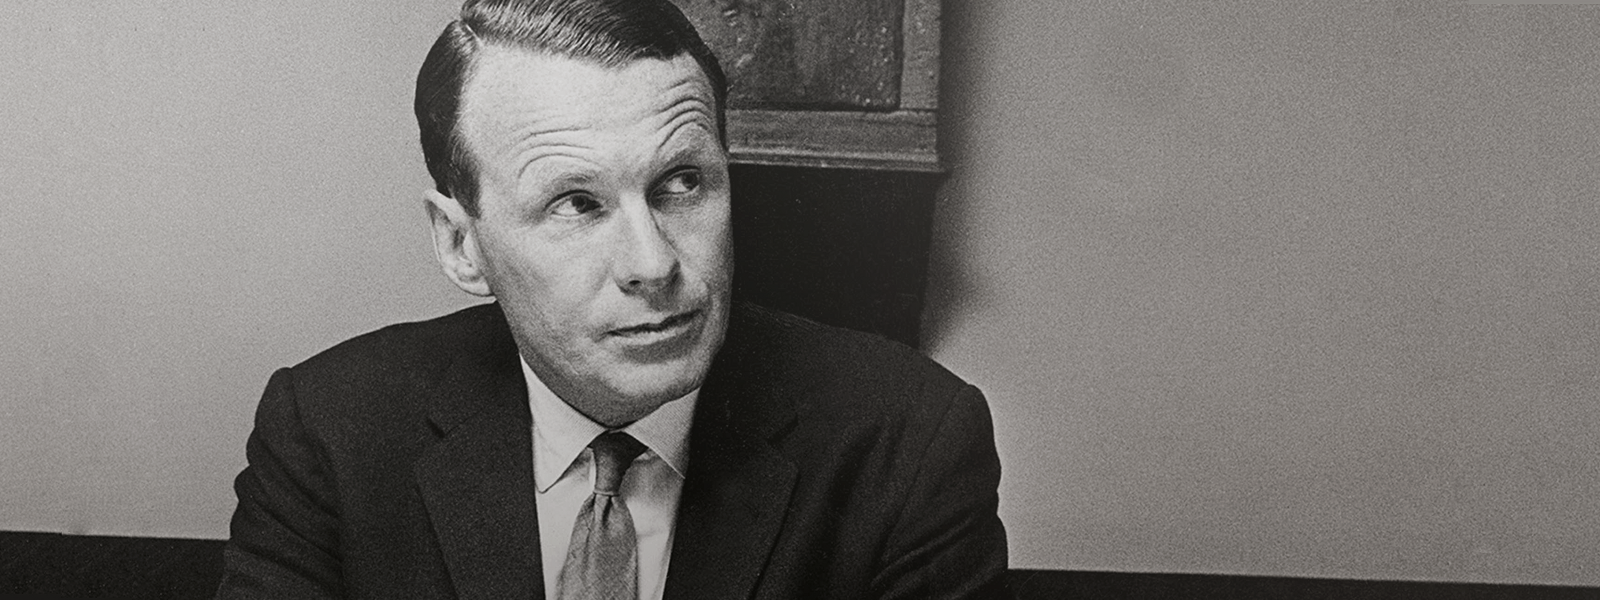 David Ogilvy's 19 Unconventional Rules for Getting Clients (That Still Work Today)